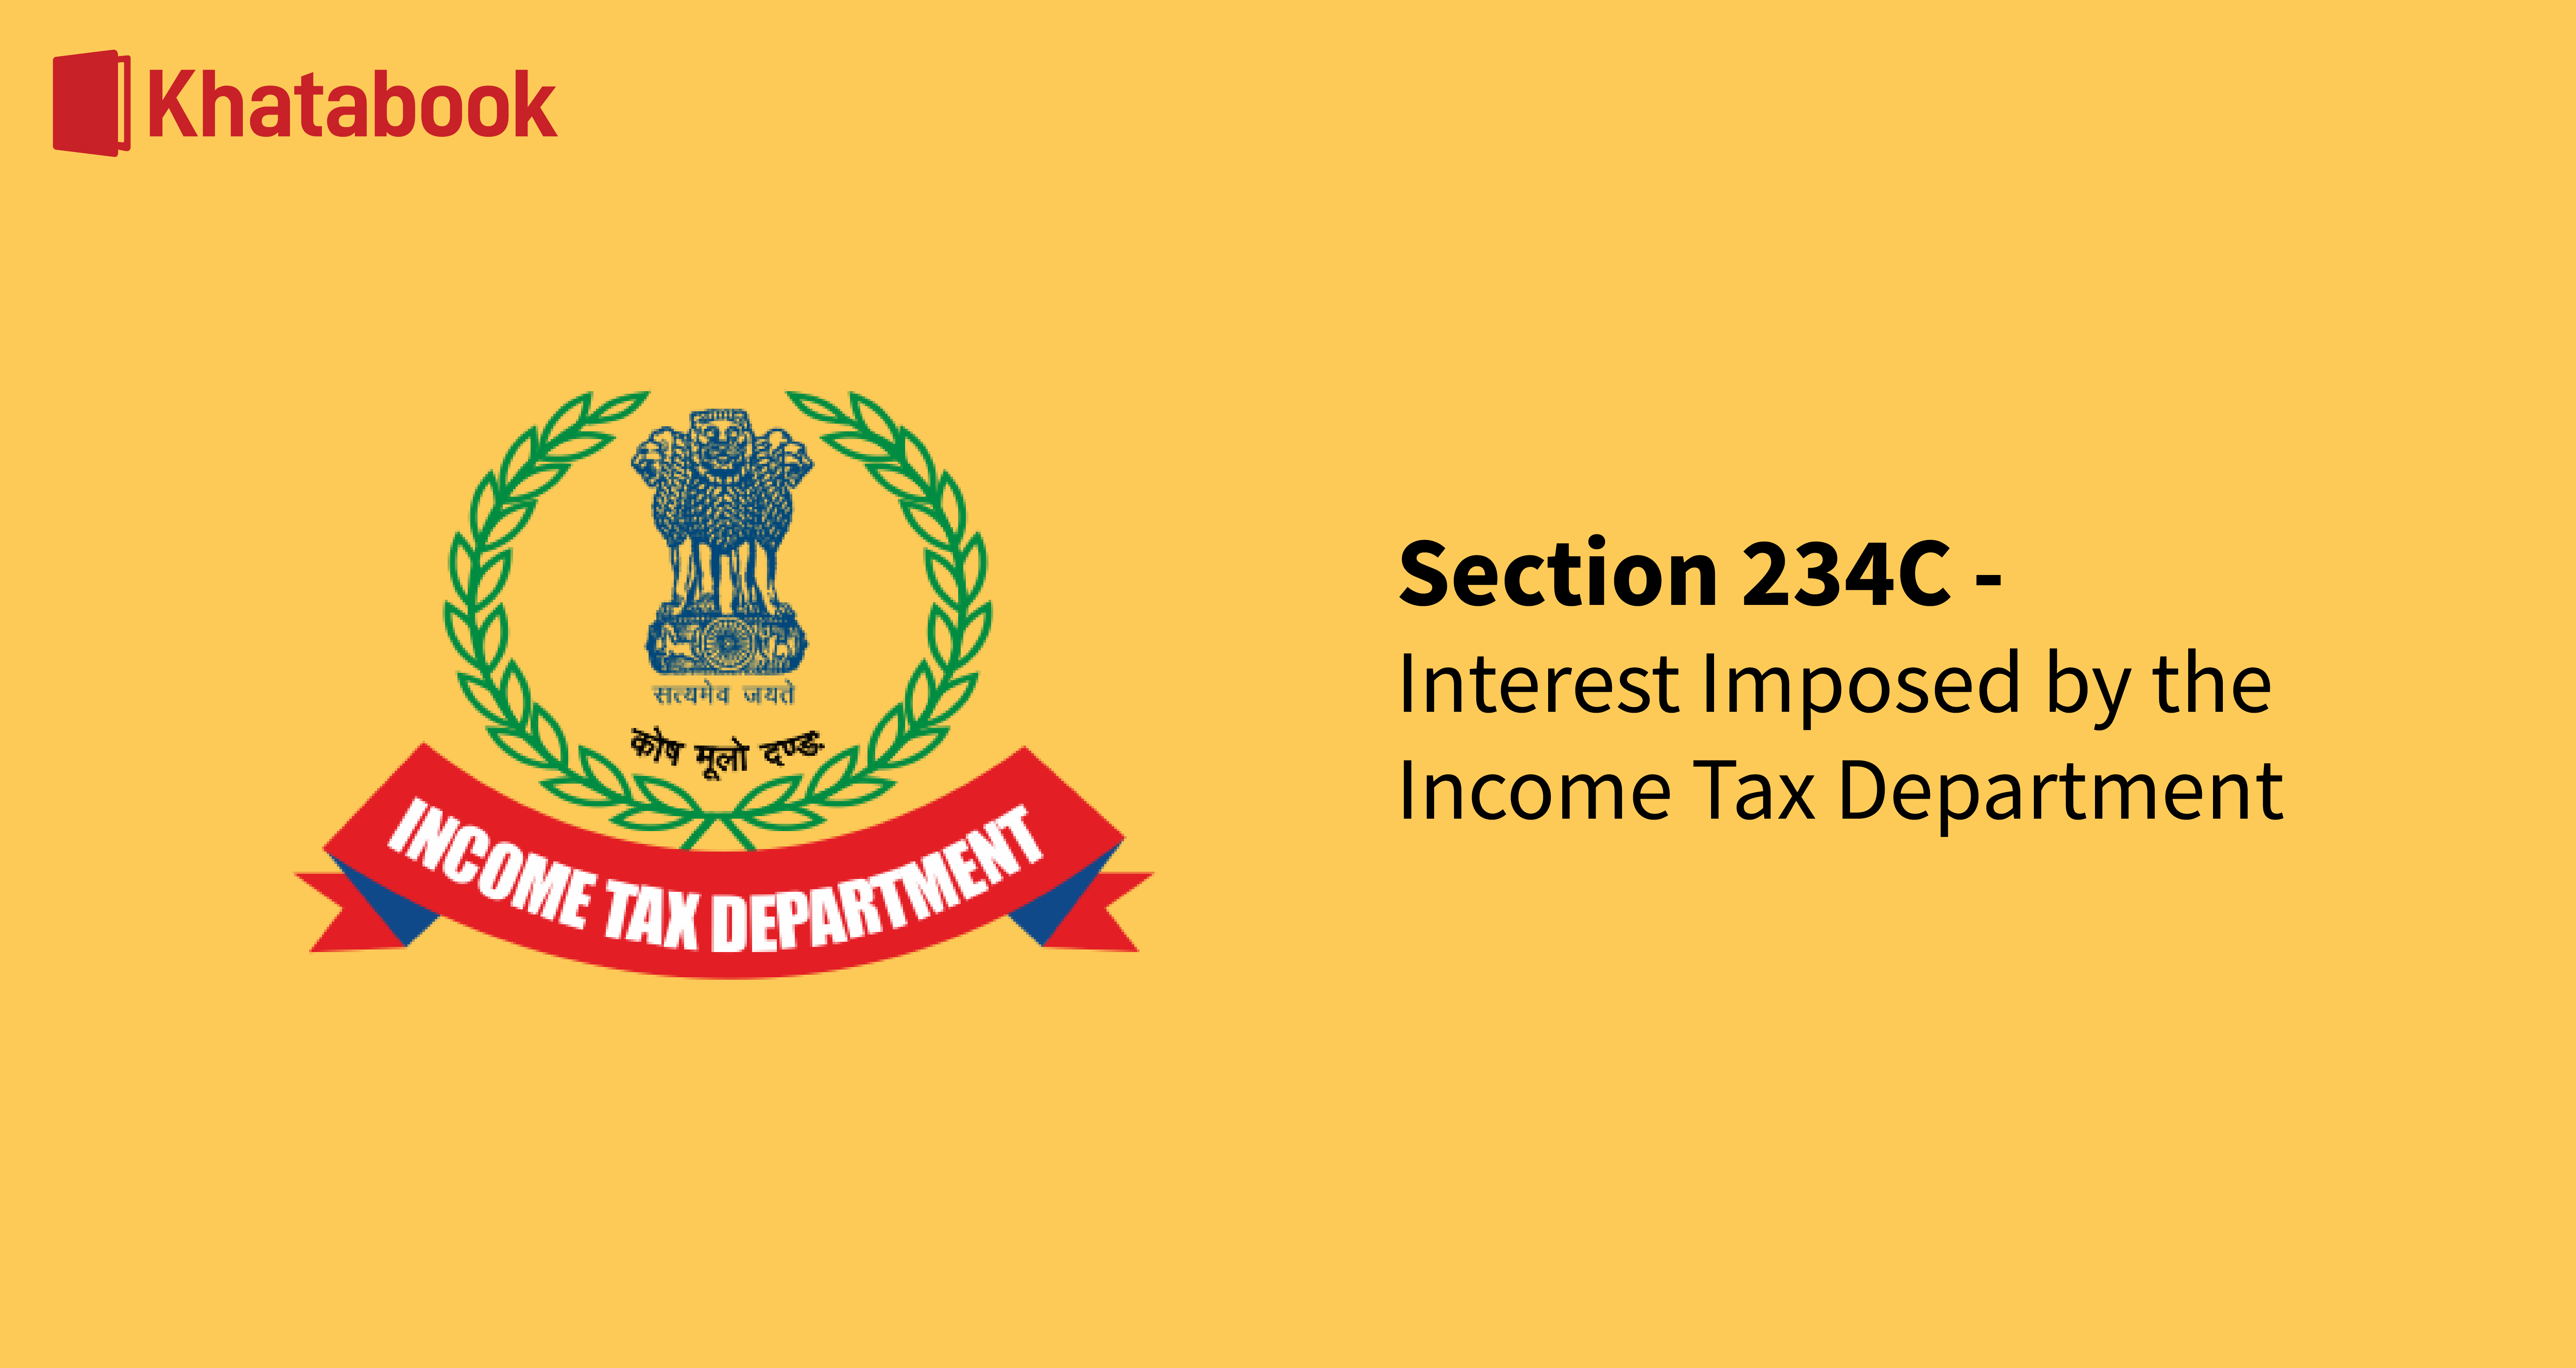 Interest Imposed by the Income Tax Department Under Section 234C